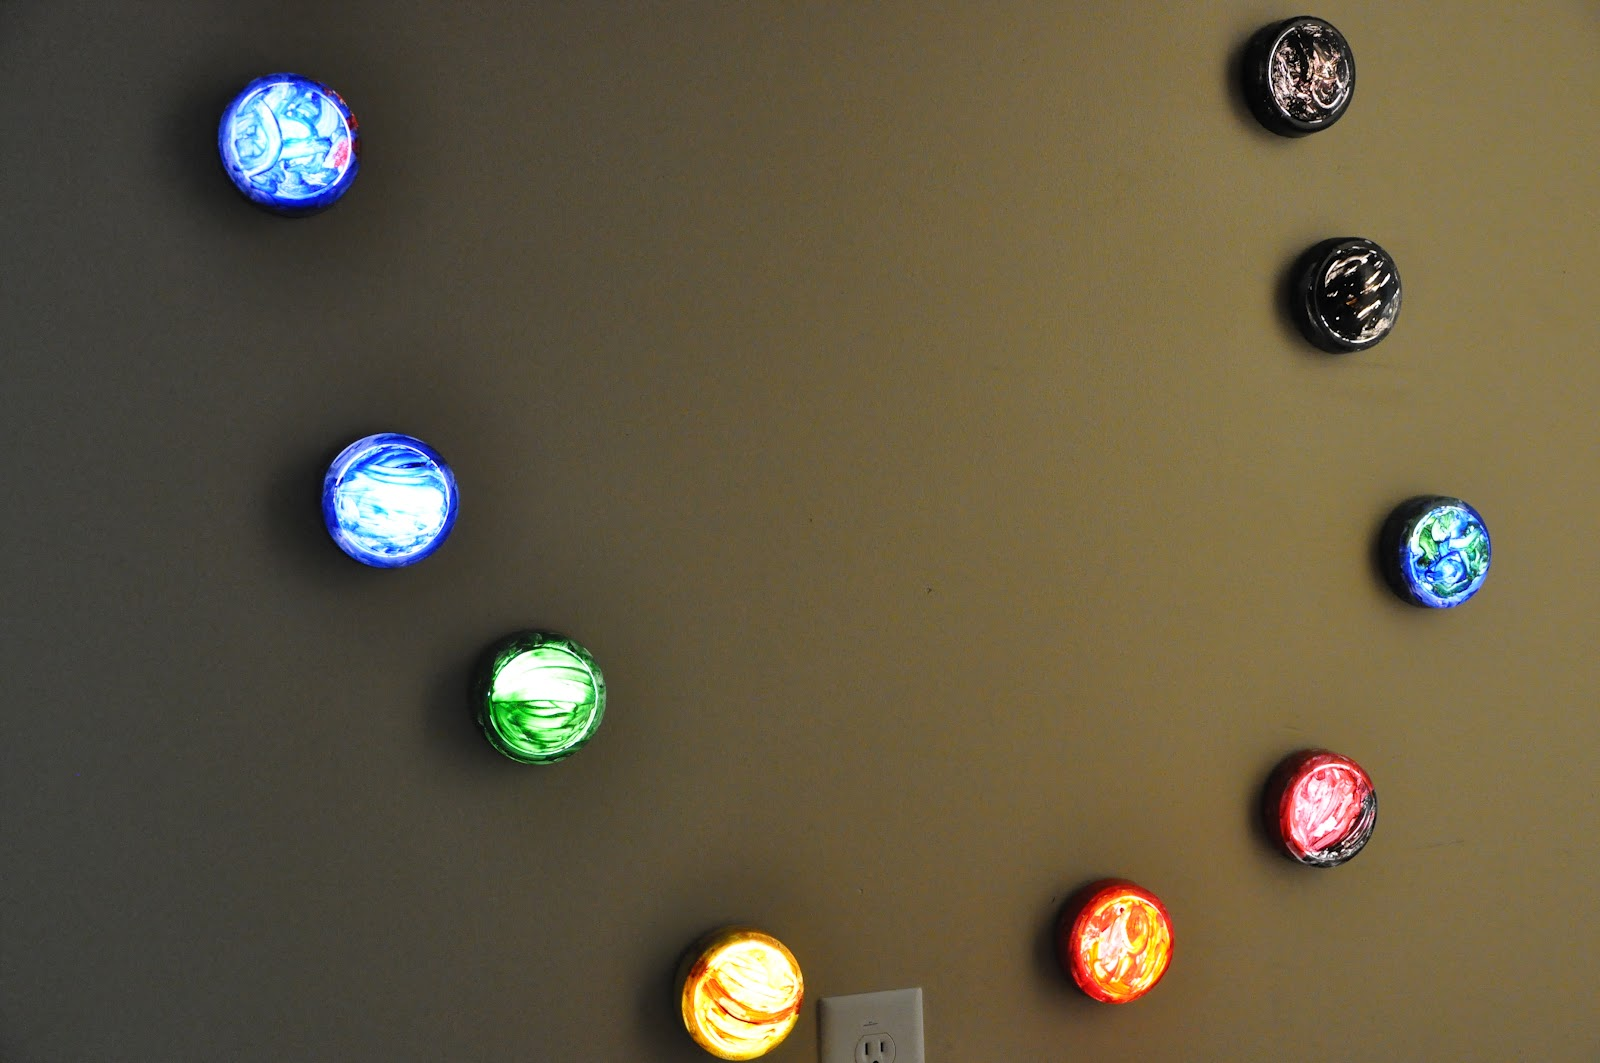 hang up solar system ceiling - photo #28